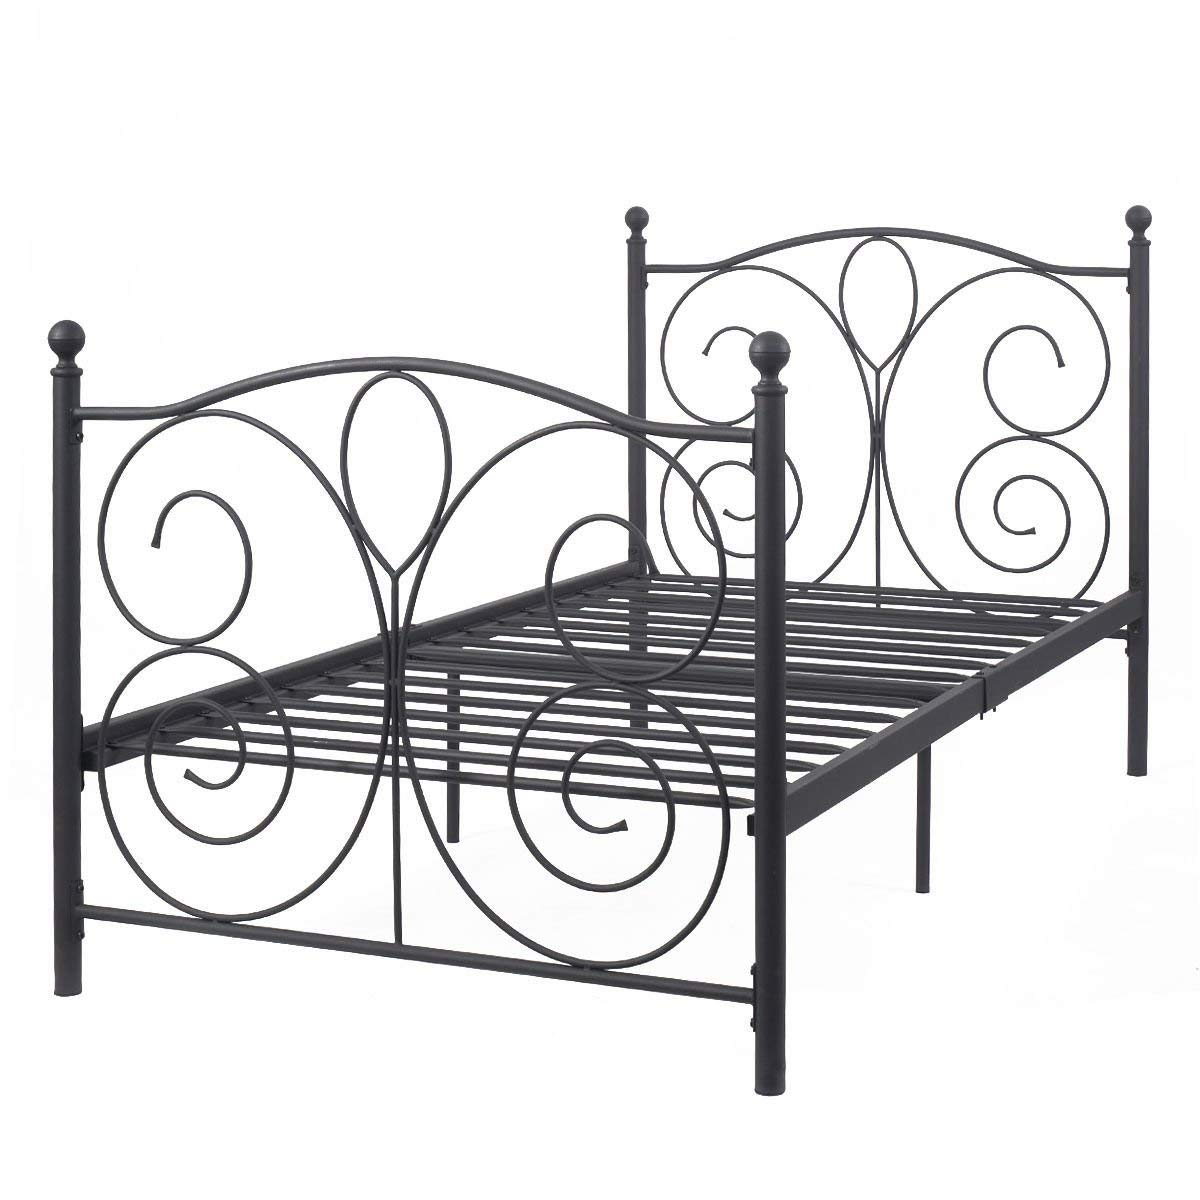 "Twin Size Bed Frame Black Steel Metal Bed Platform Foundation Sturdy and Durable Furniture New 83""x43""x42"" by madamecoffee"